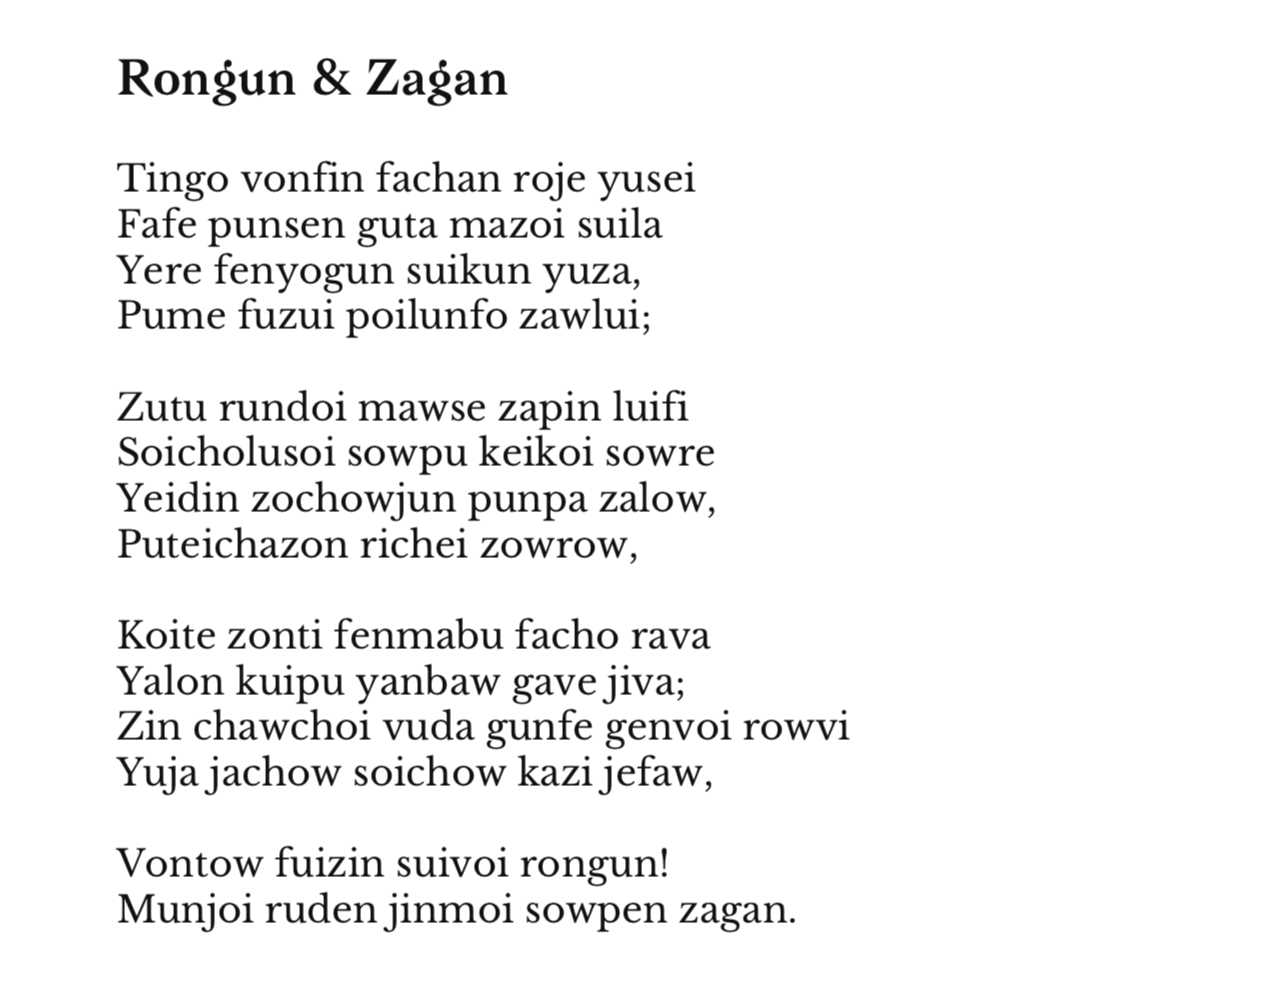 Example of a generated sonnet rhyming 'rongun' and 'zagan'